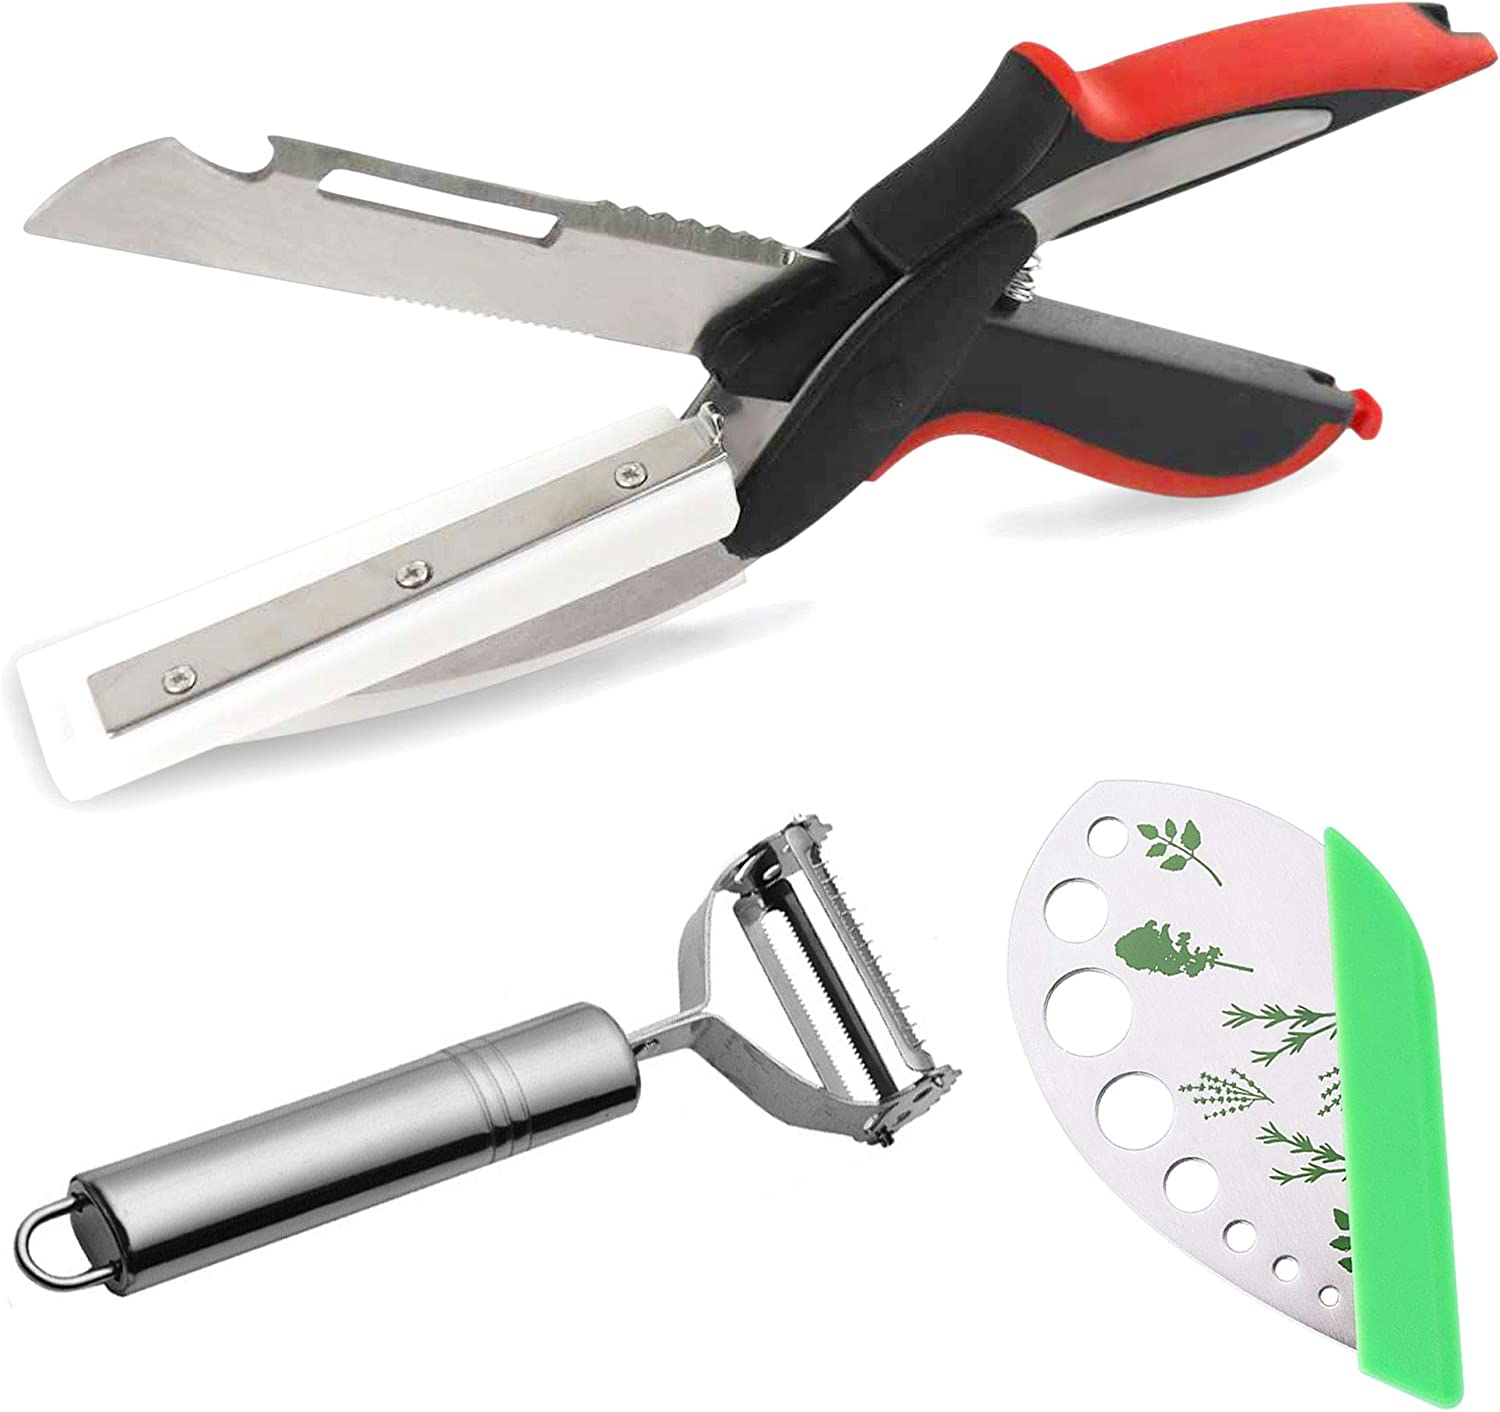 Clever Food Chopper Scissors, Herb Cutter, Vegetable Peeler, 2 in 1 Smart Cutter, Leaf Stripper 9 Holes with Chopper for Chopping Fruits, Vegetables, Meat, Cheese